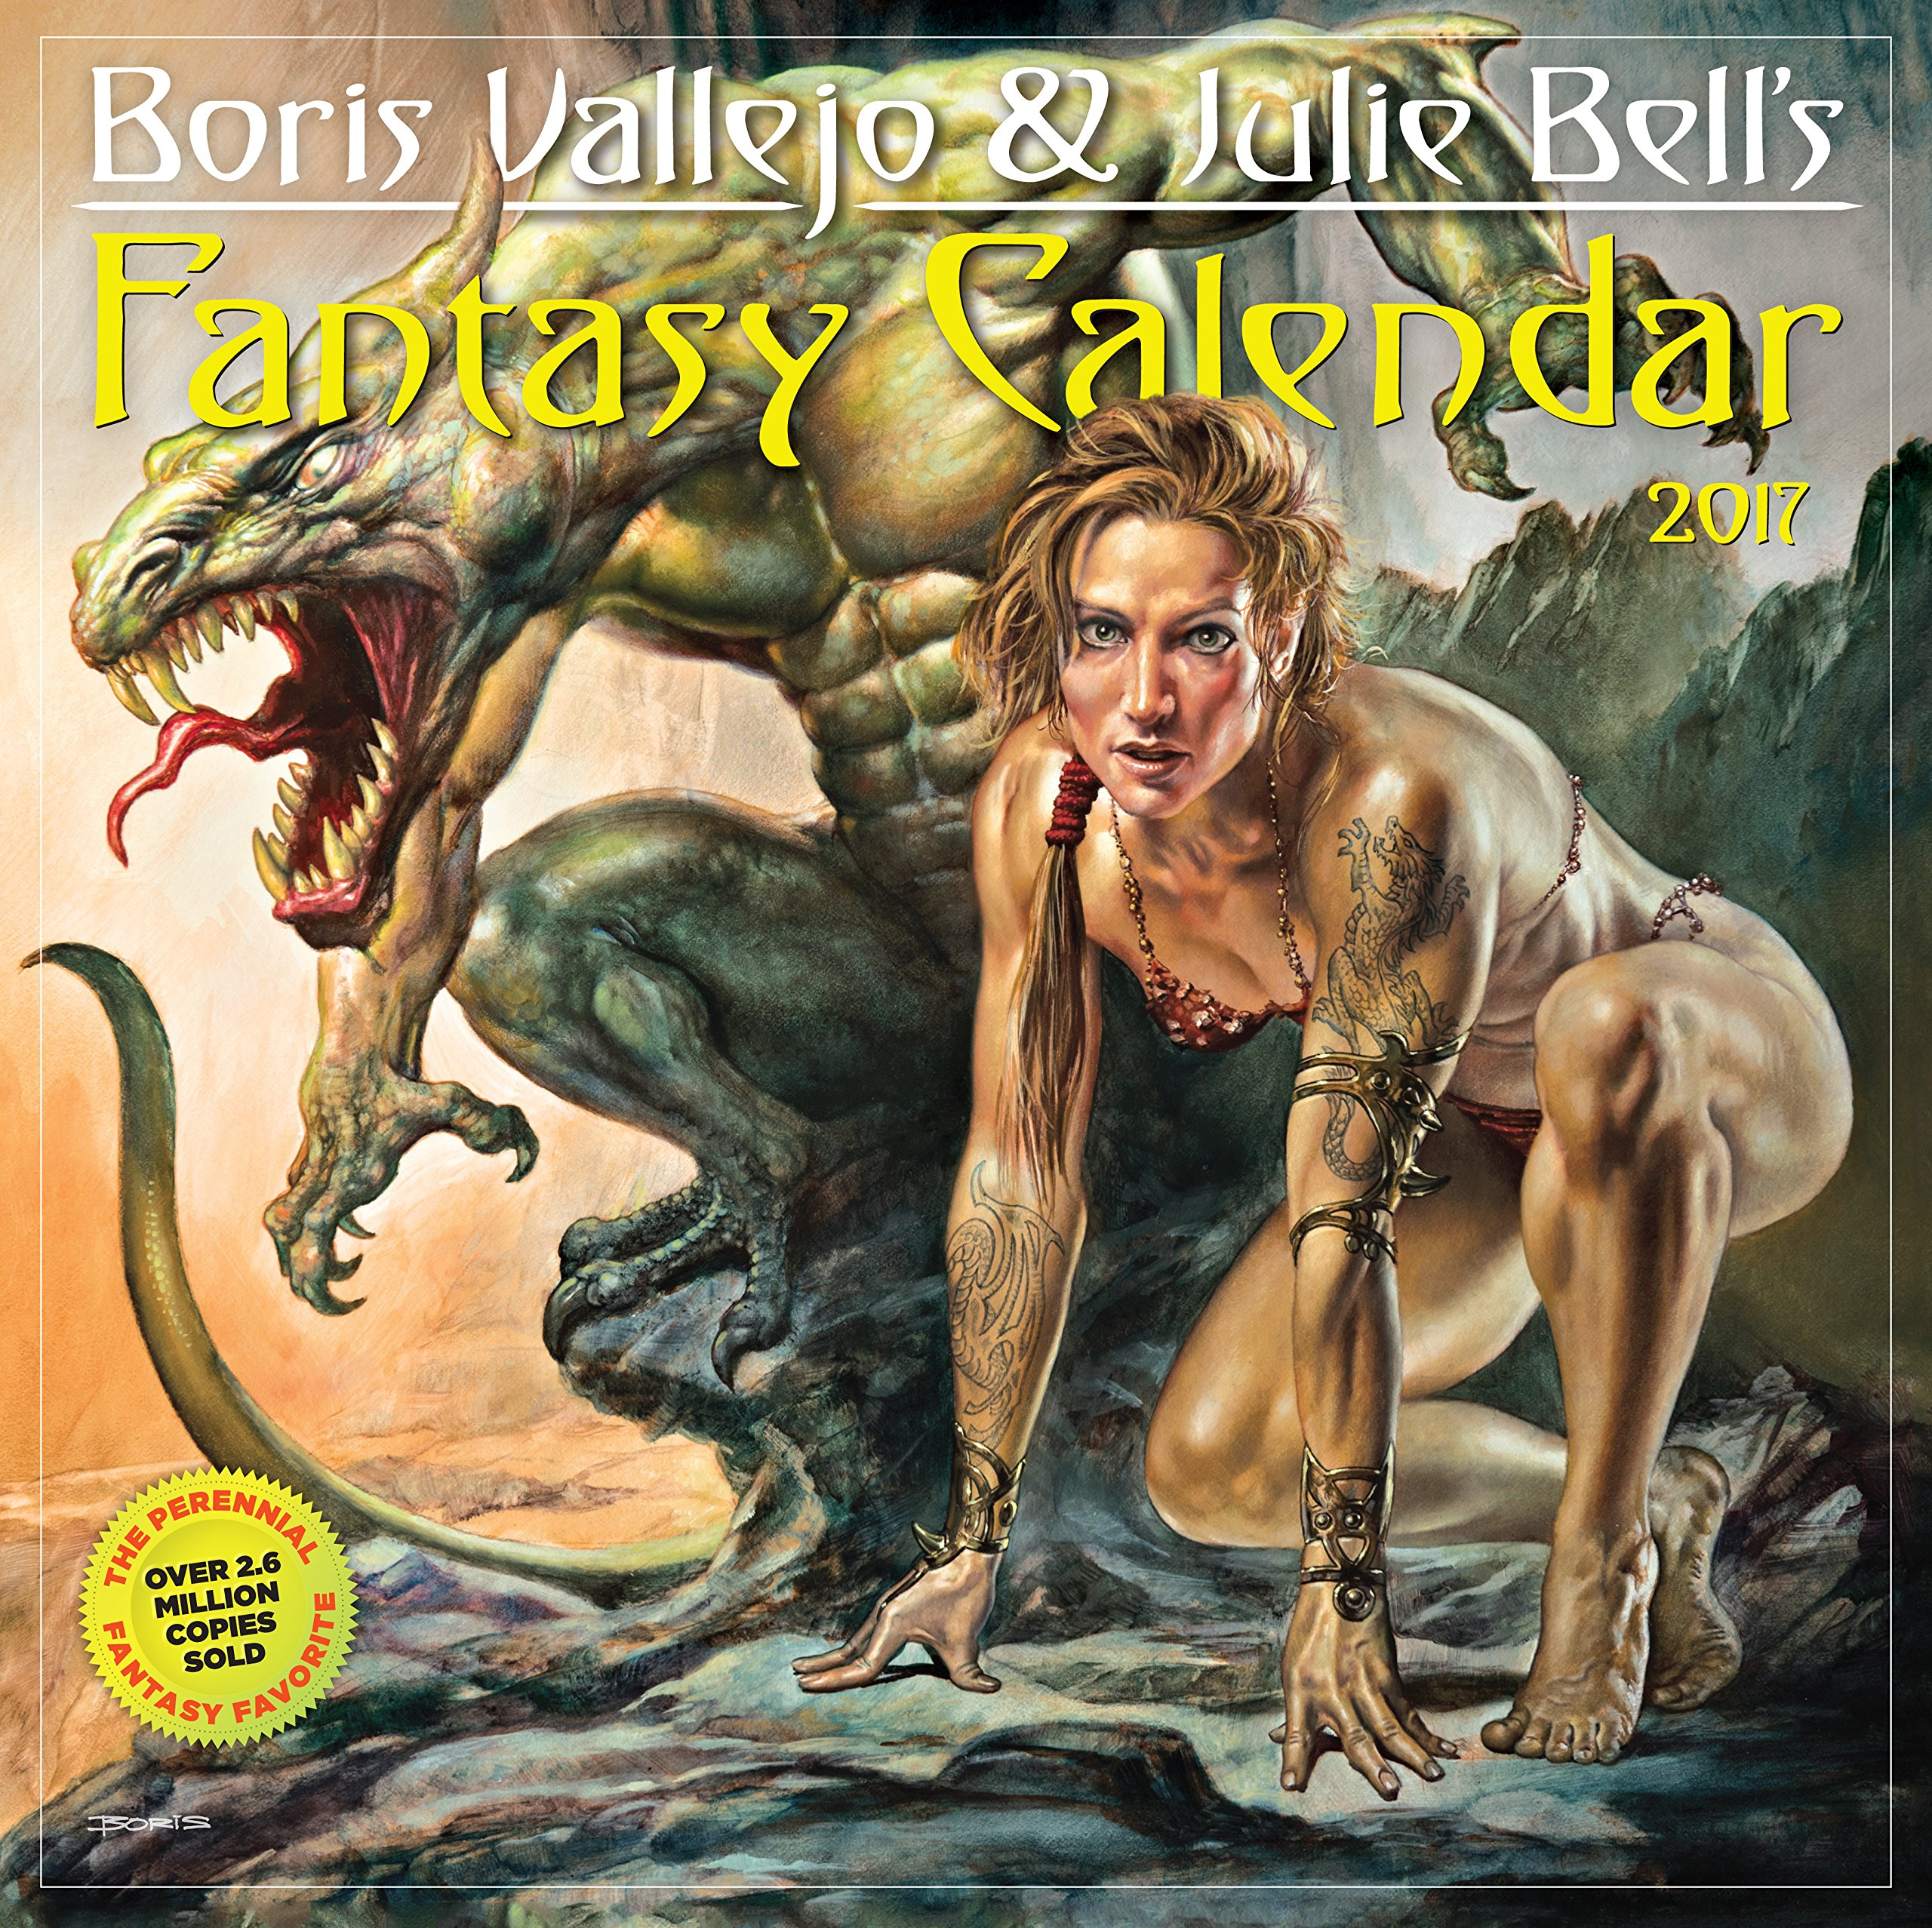 Boris Vallejo & Julie Bell's Fantasy Wall Calendar 2017 by Workman Publishing Company